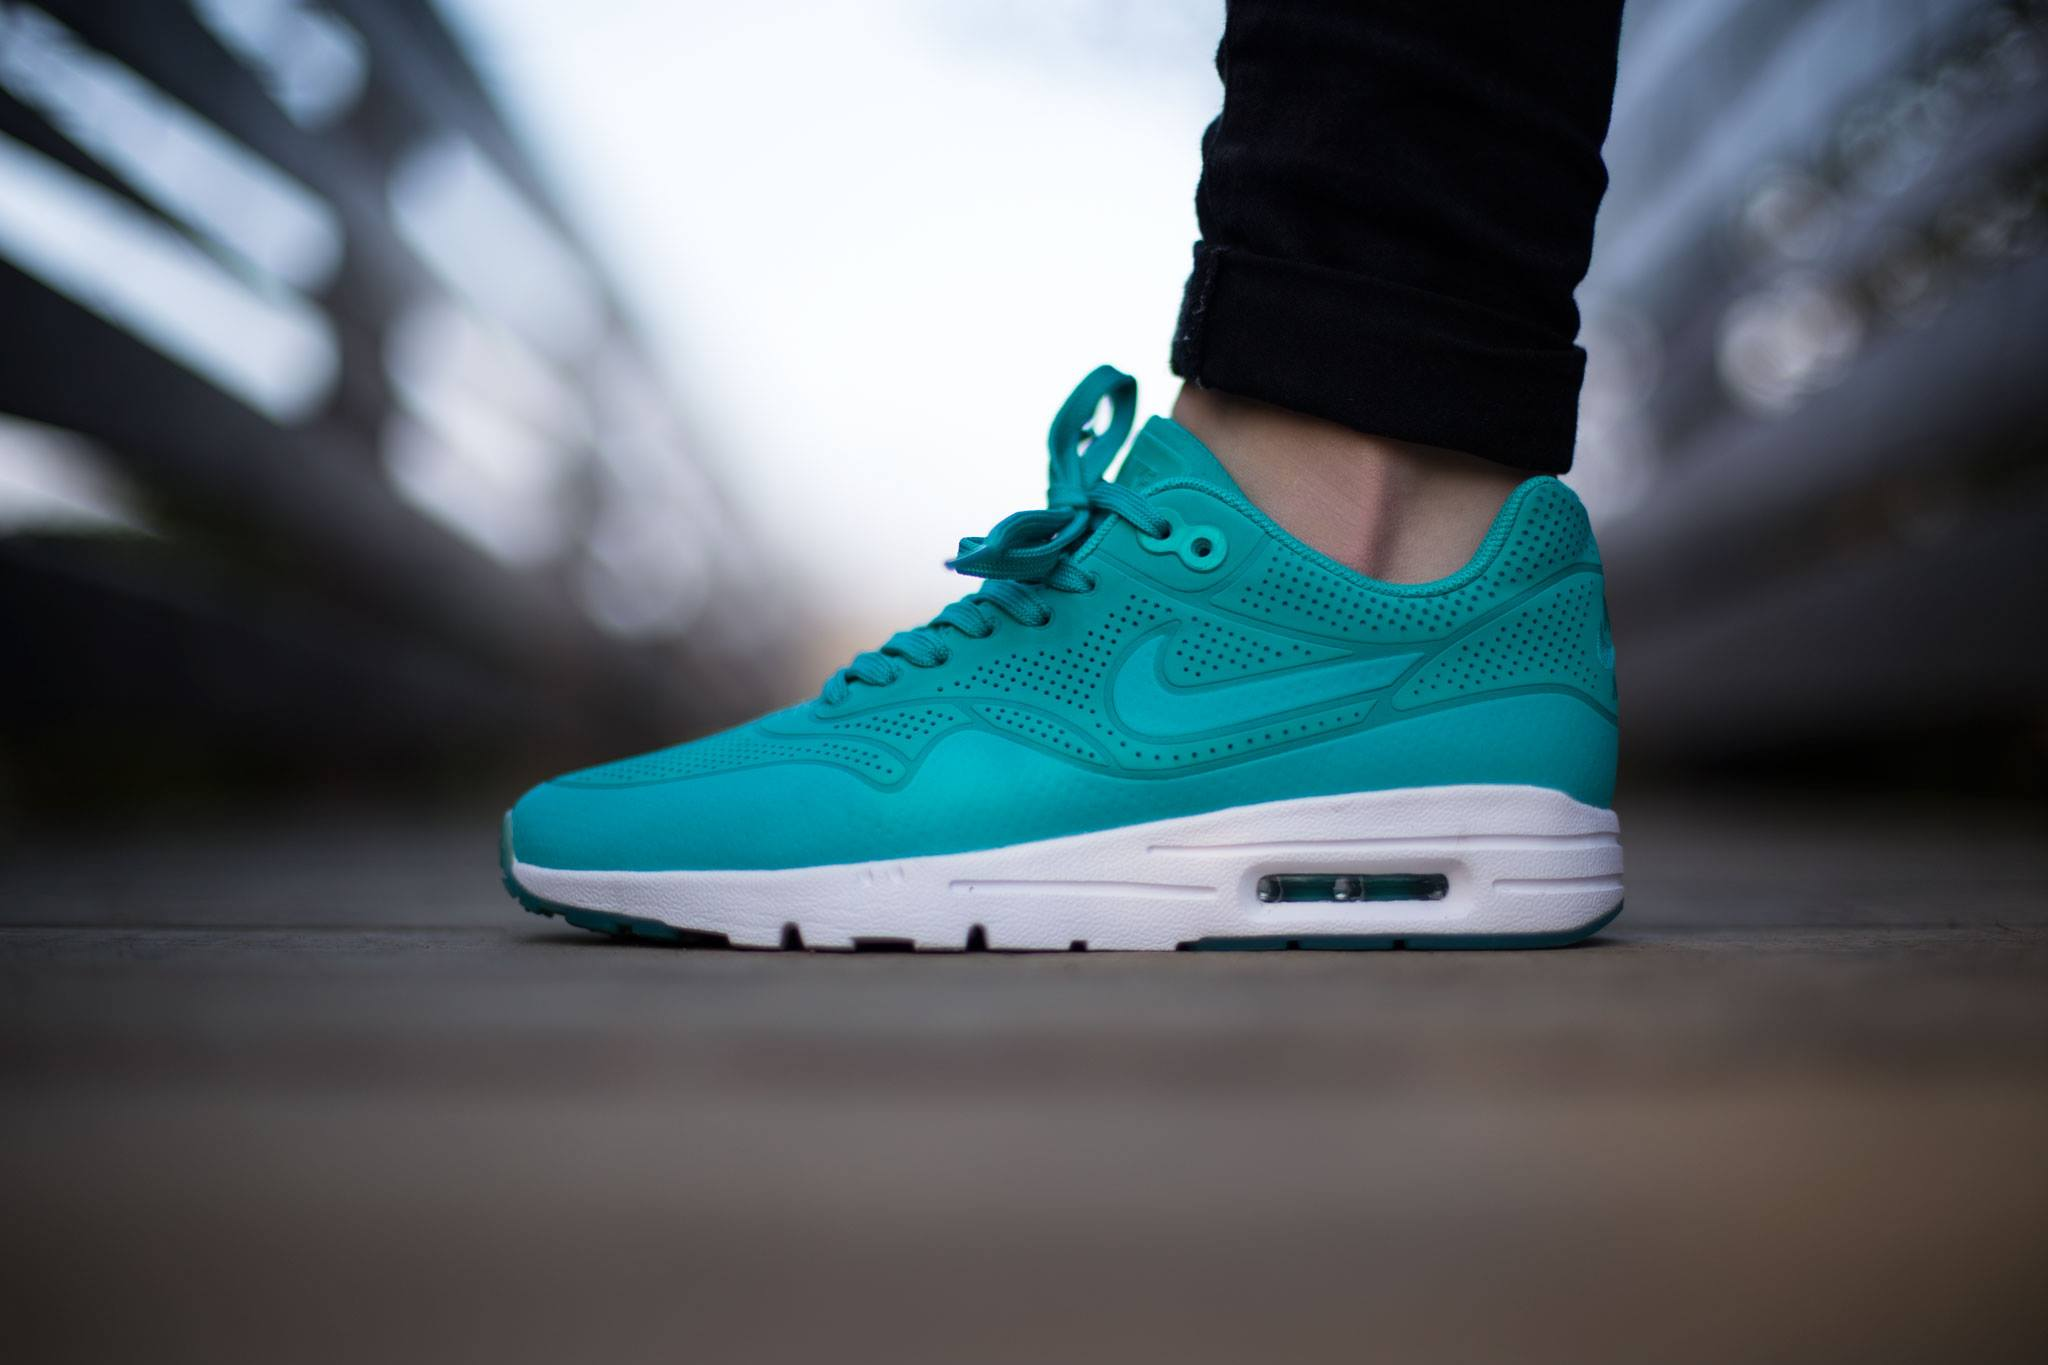 Nike Air Max 1 Ultra Moire Light Retro